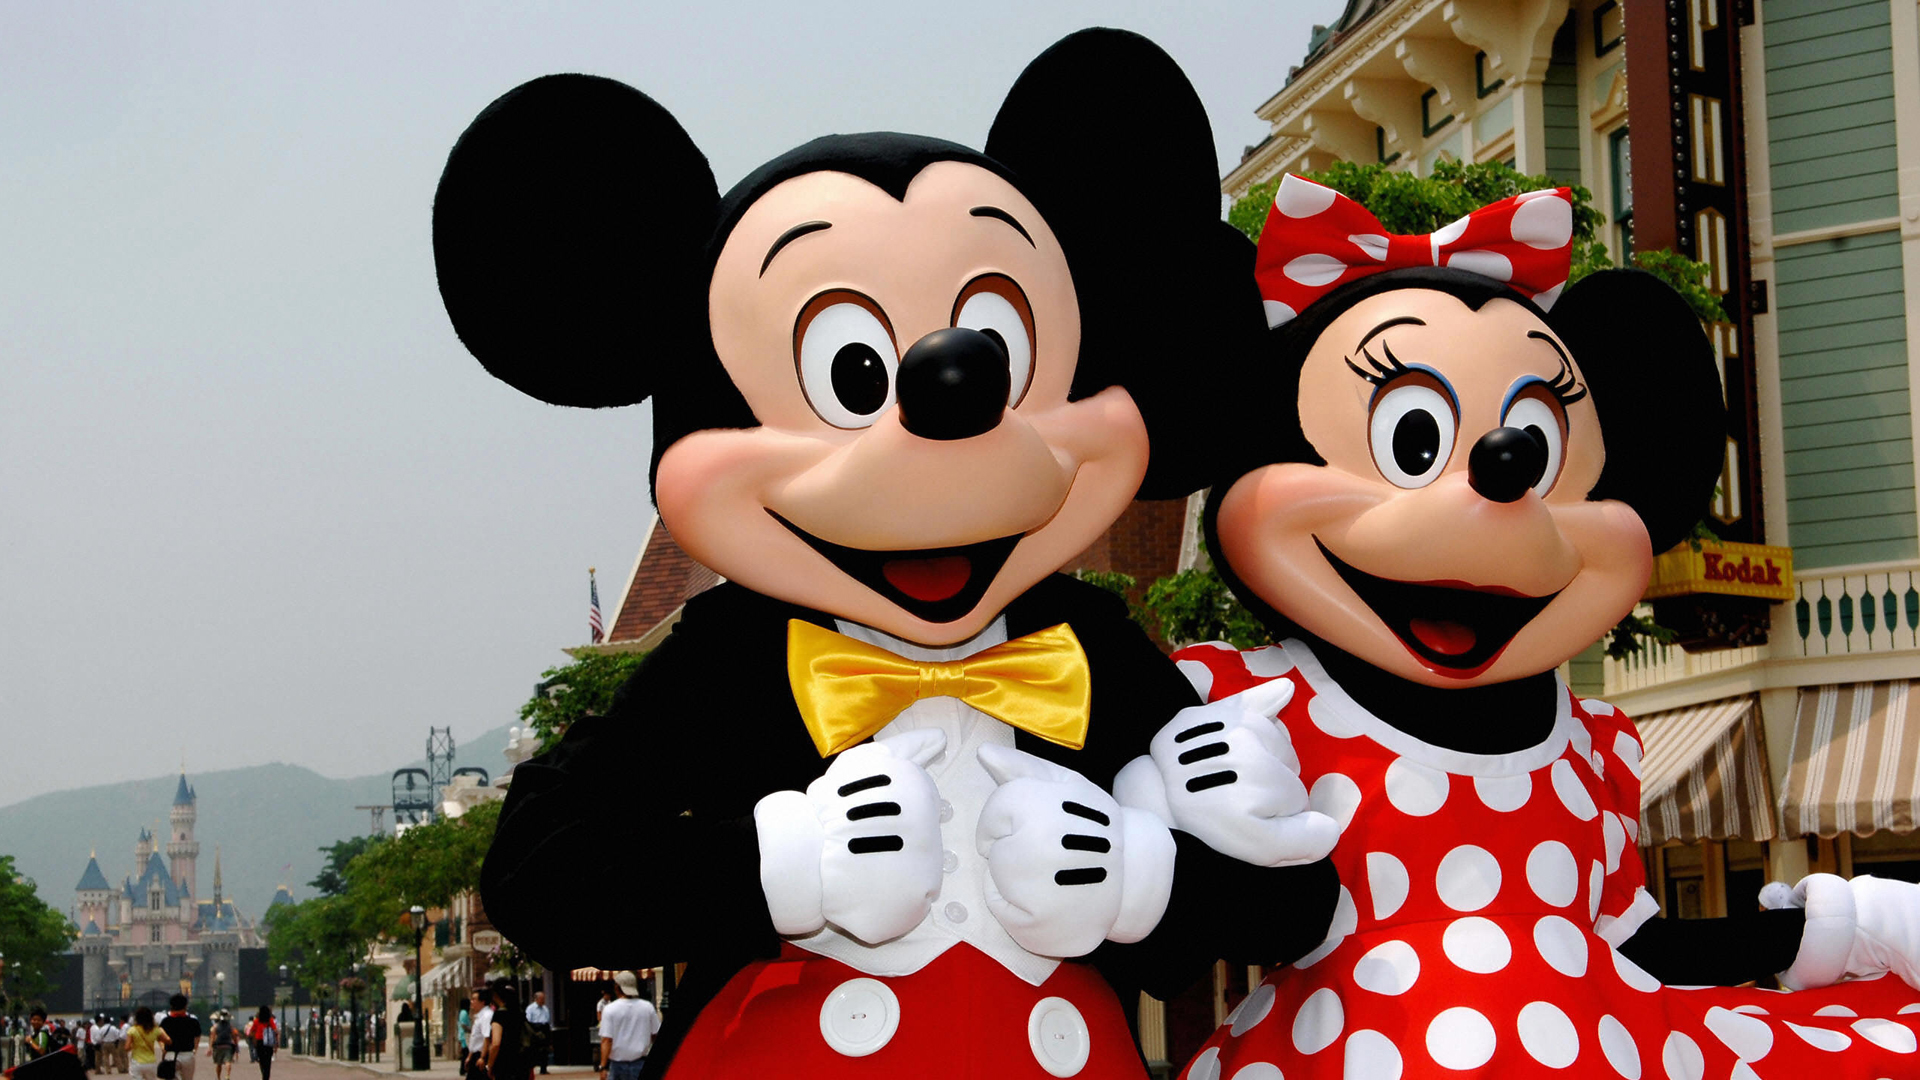 Mickey and Minnie Mouse walk around Main Street in Hong Kong Disneyland on Sep. 11, 2005. (Credit: ANDREW ROSS/AFP/Getty Images)